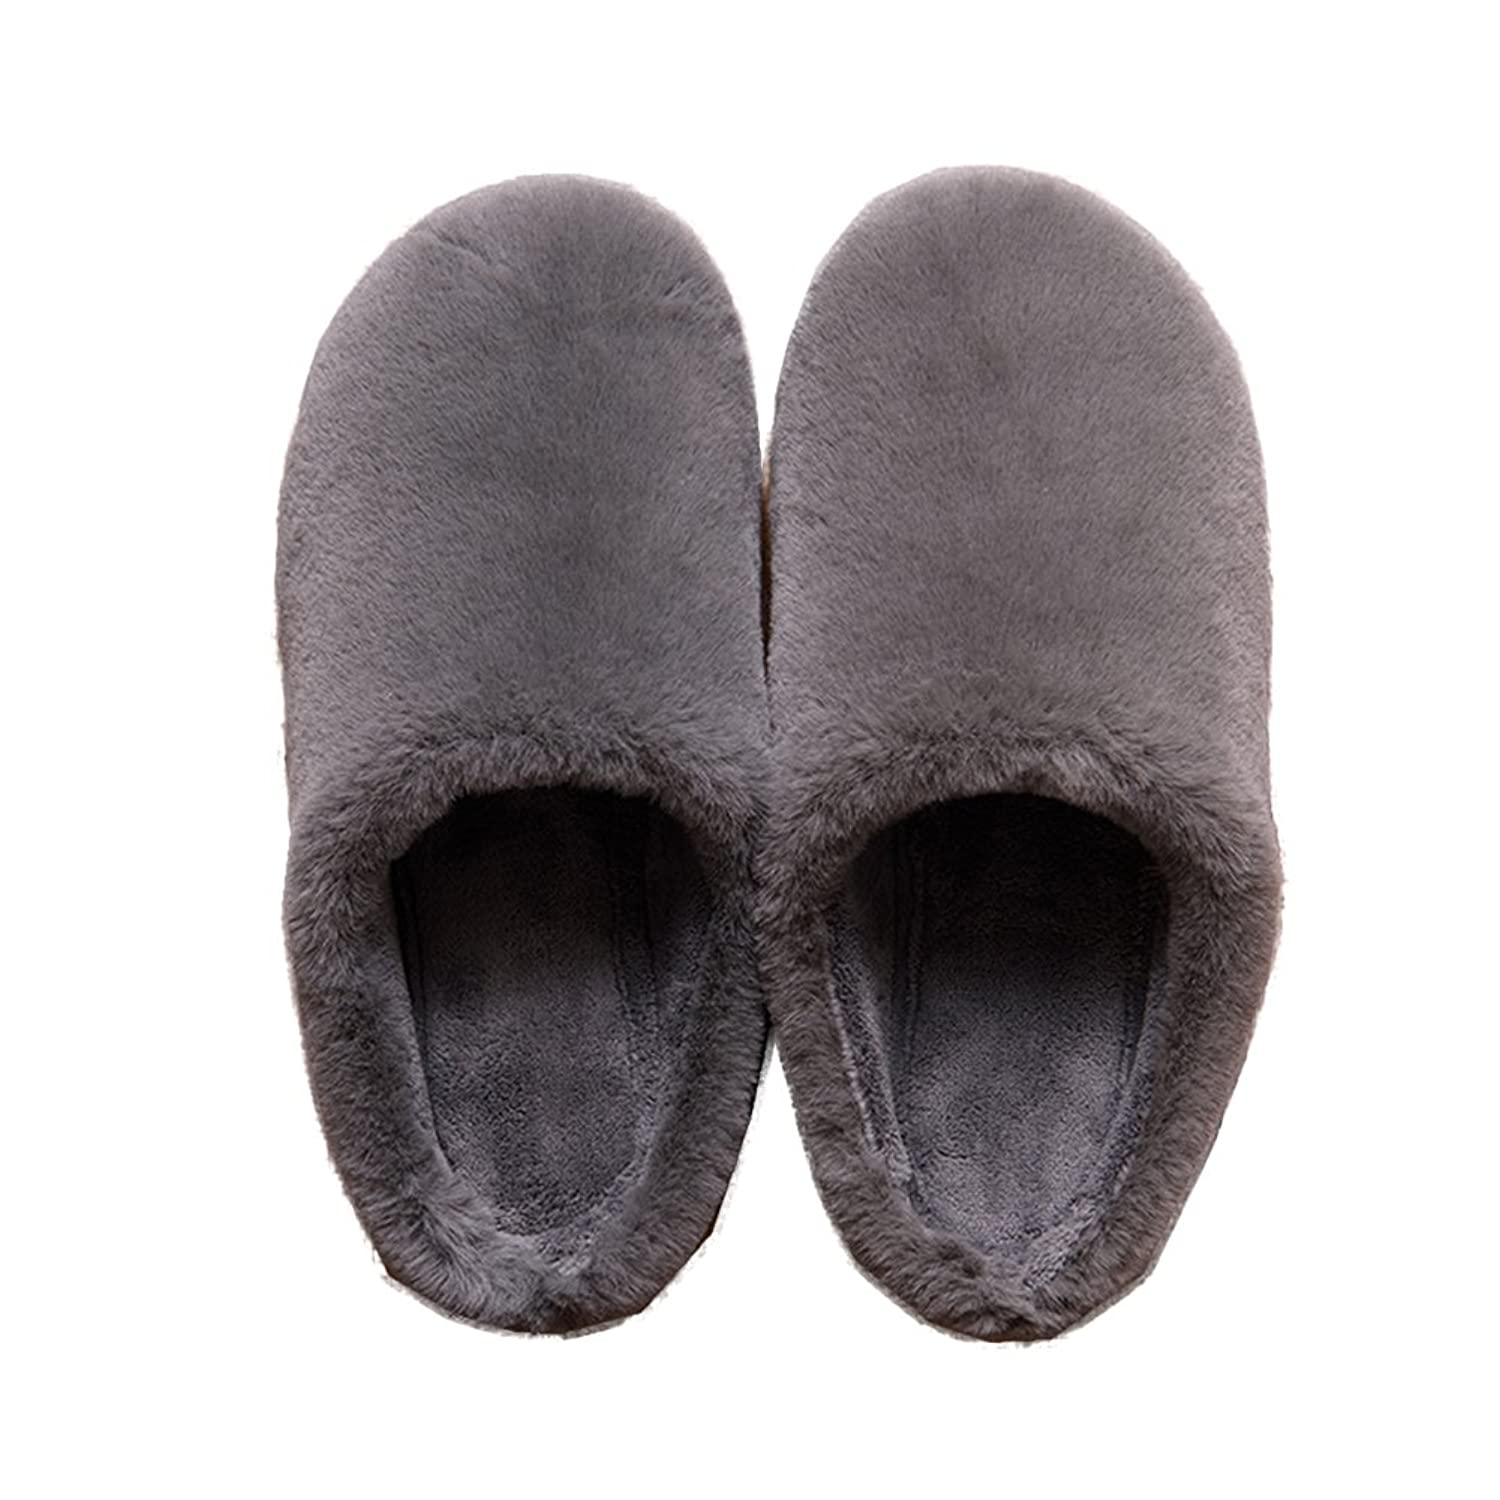 839f30a08beb2 TELLW Men and Women Winter Warm Slippers Plush Cotton Woolly Slippers  Indoor Soft permeability Furry Winter